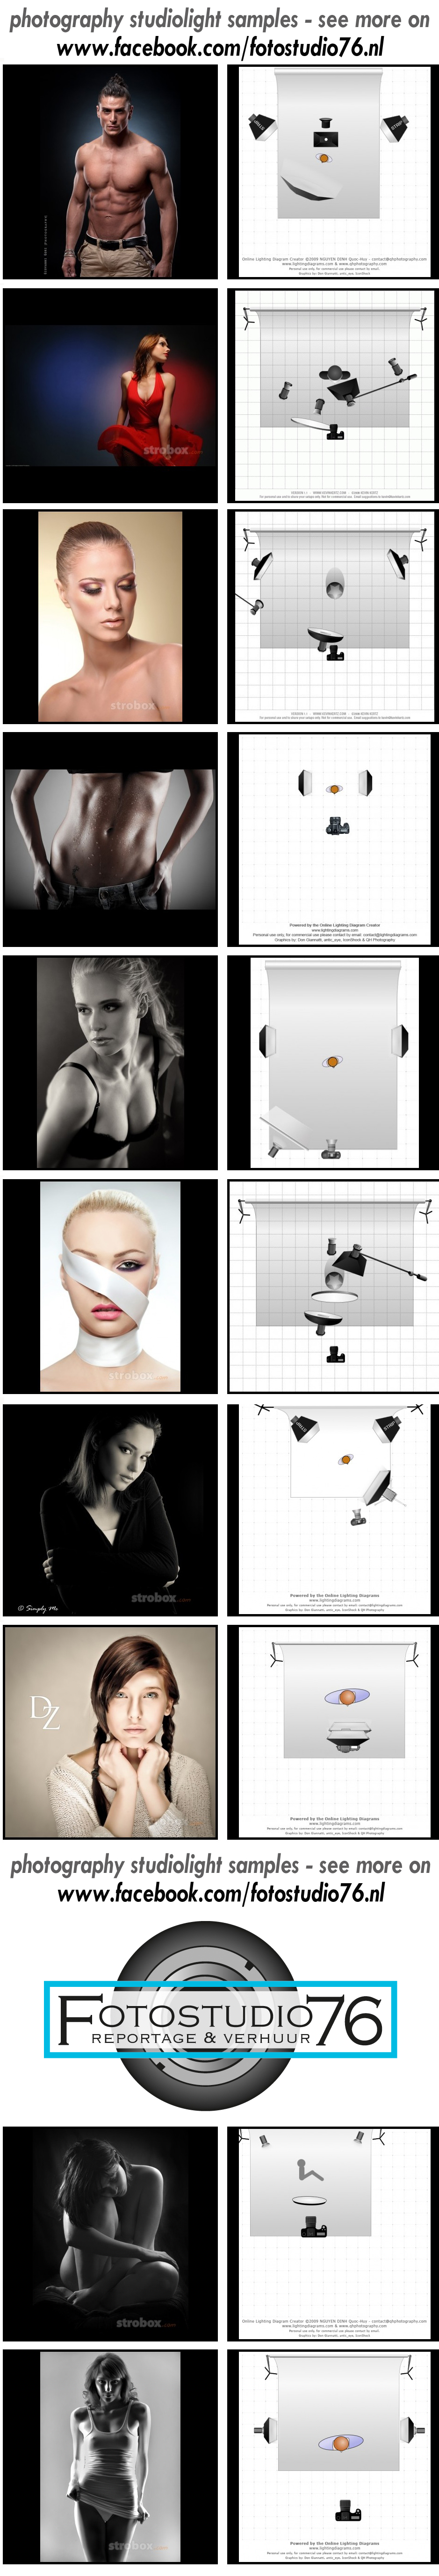 Studio photography lighting set ups